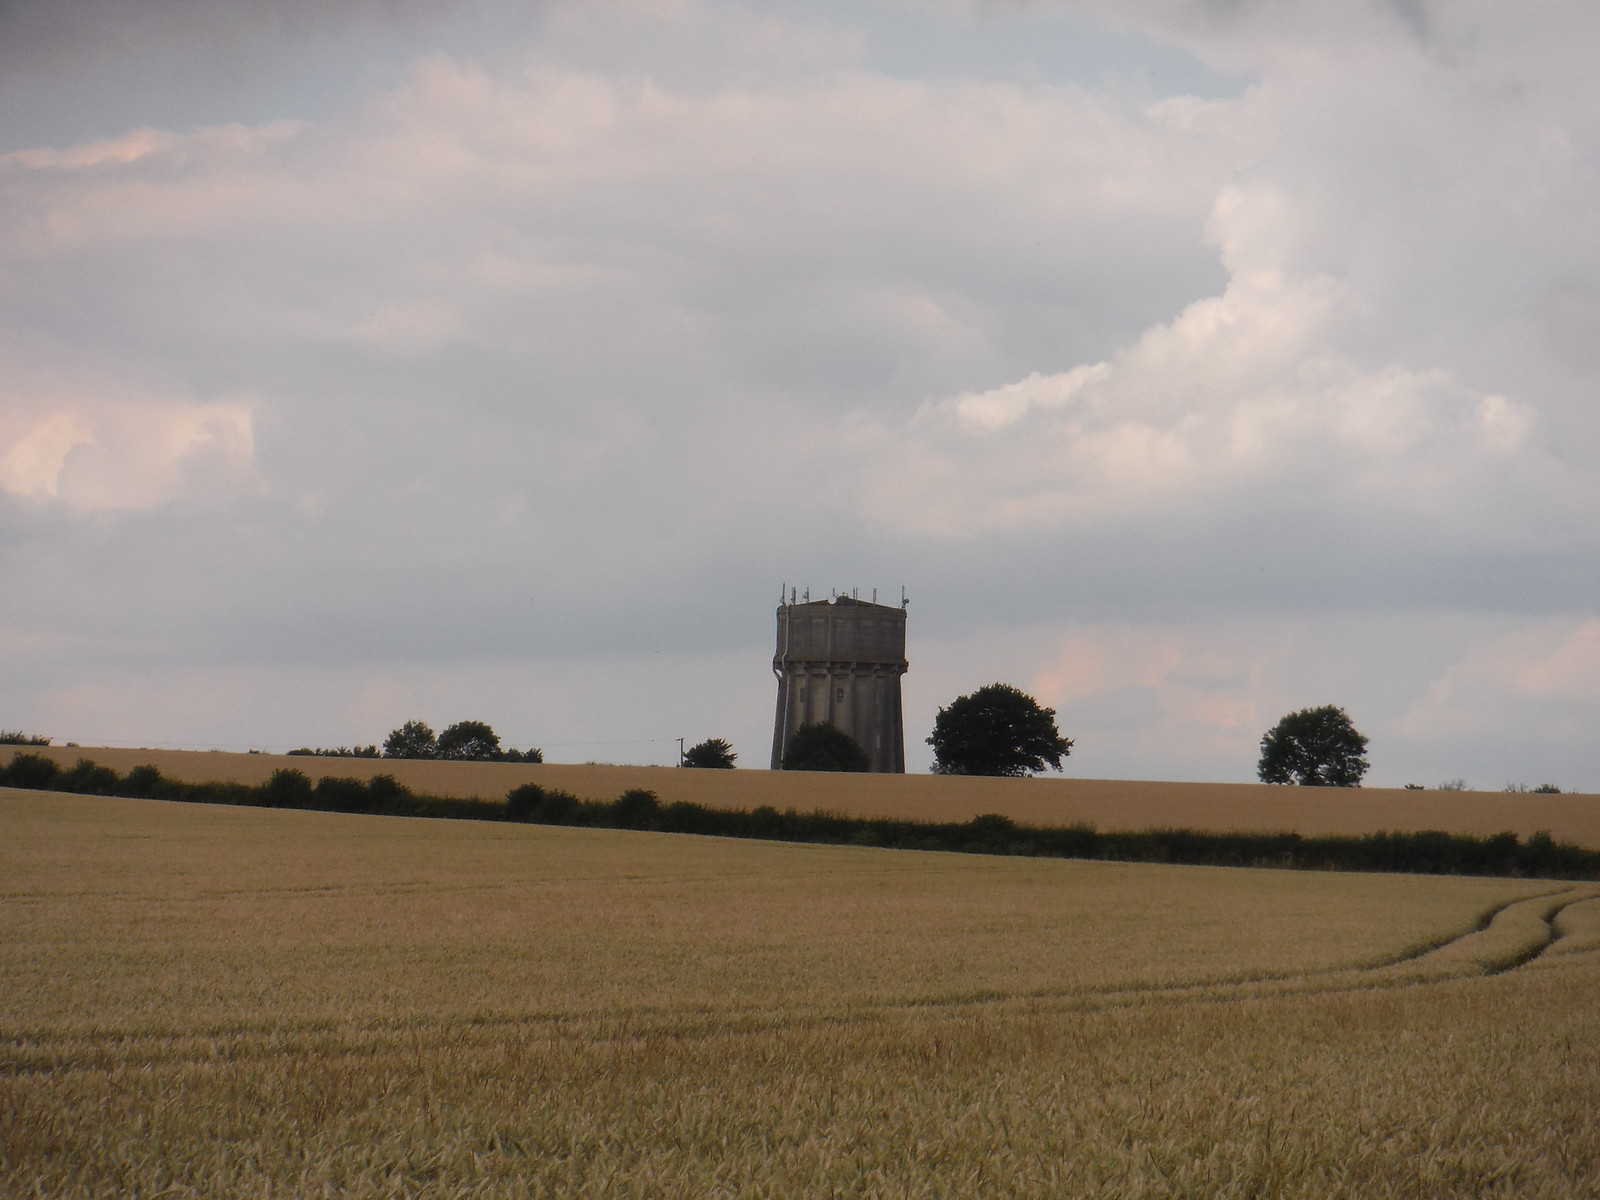 Meppershall Water Tower SWC Walk 233 - Arlesey to Letchworth Garden City